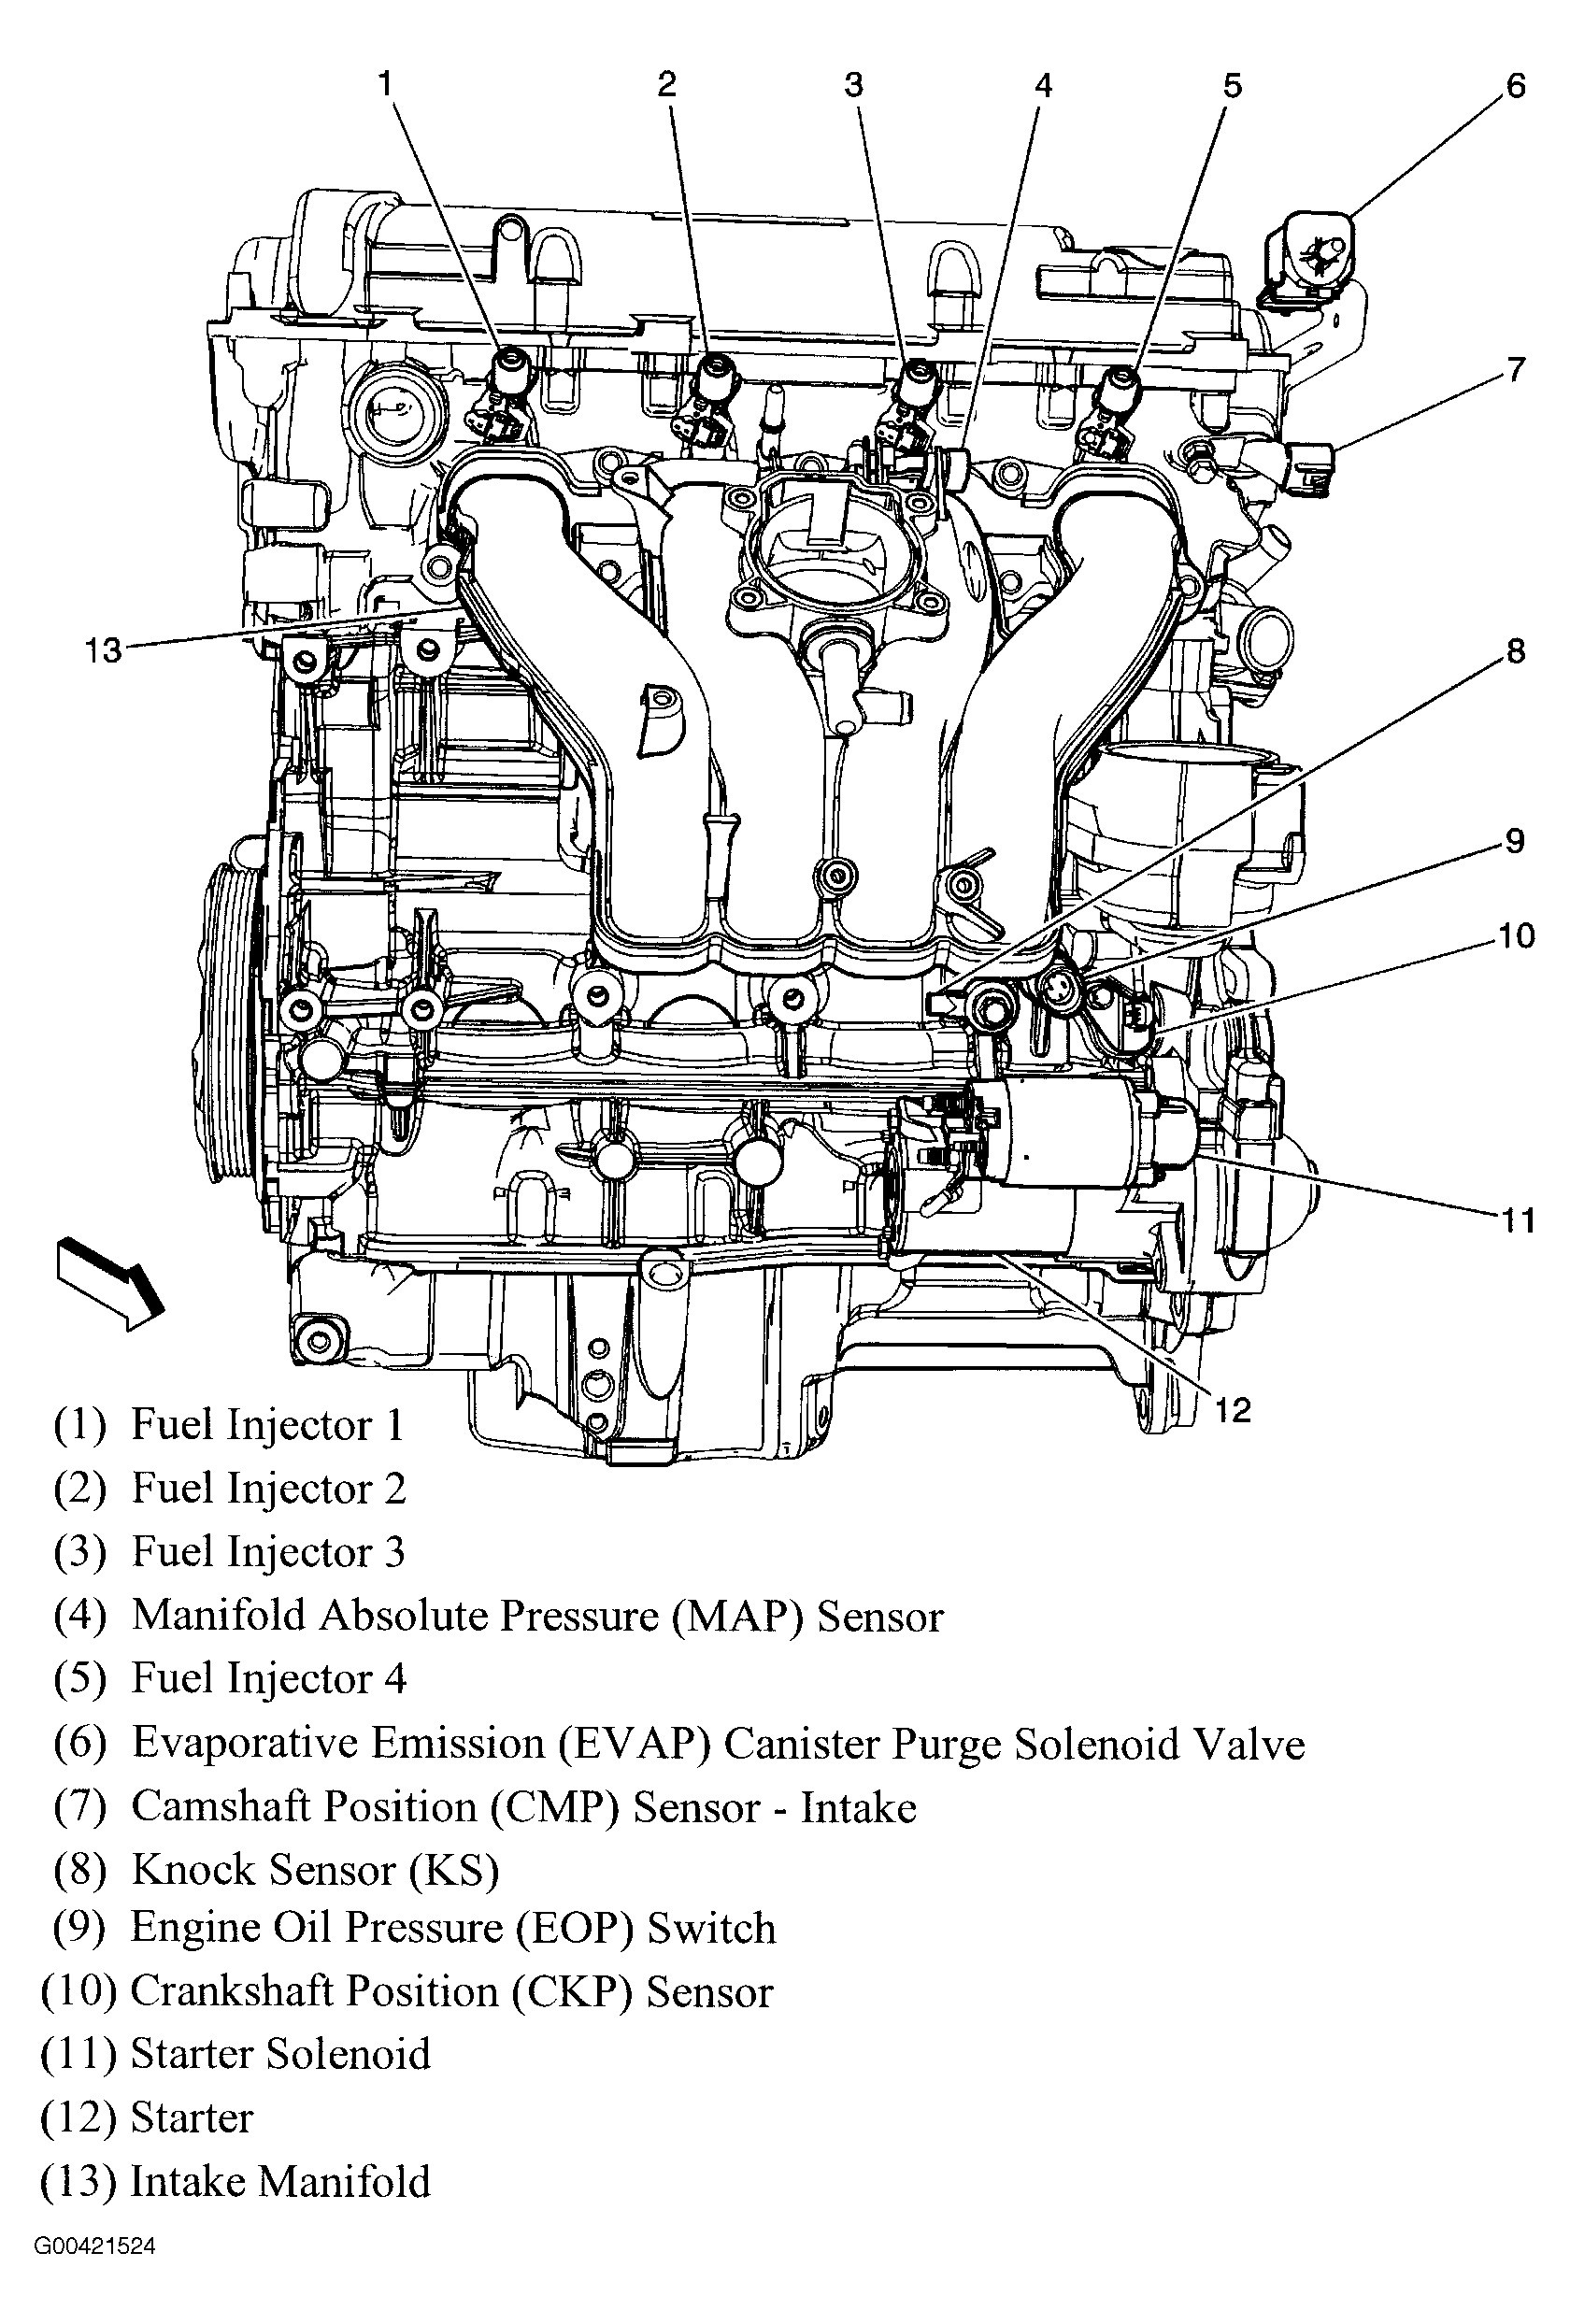 09 Chevy 4 8 Injector Wiring Diagram